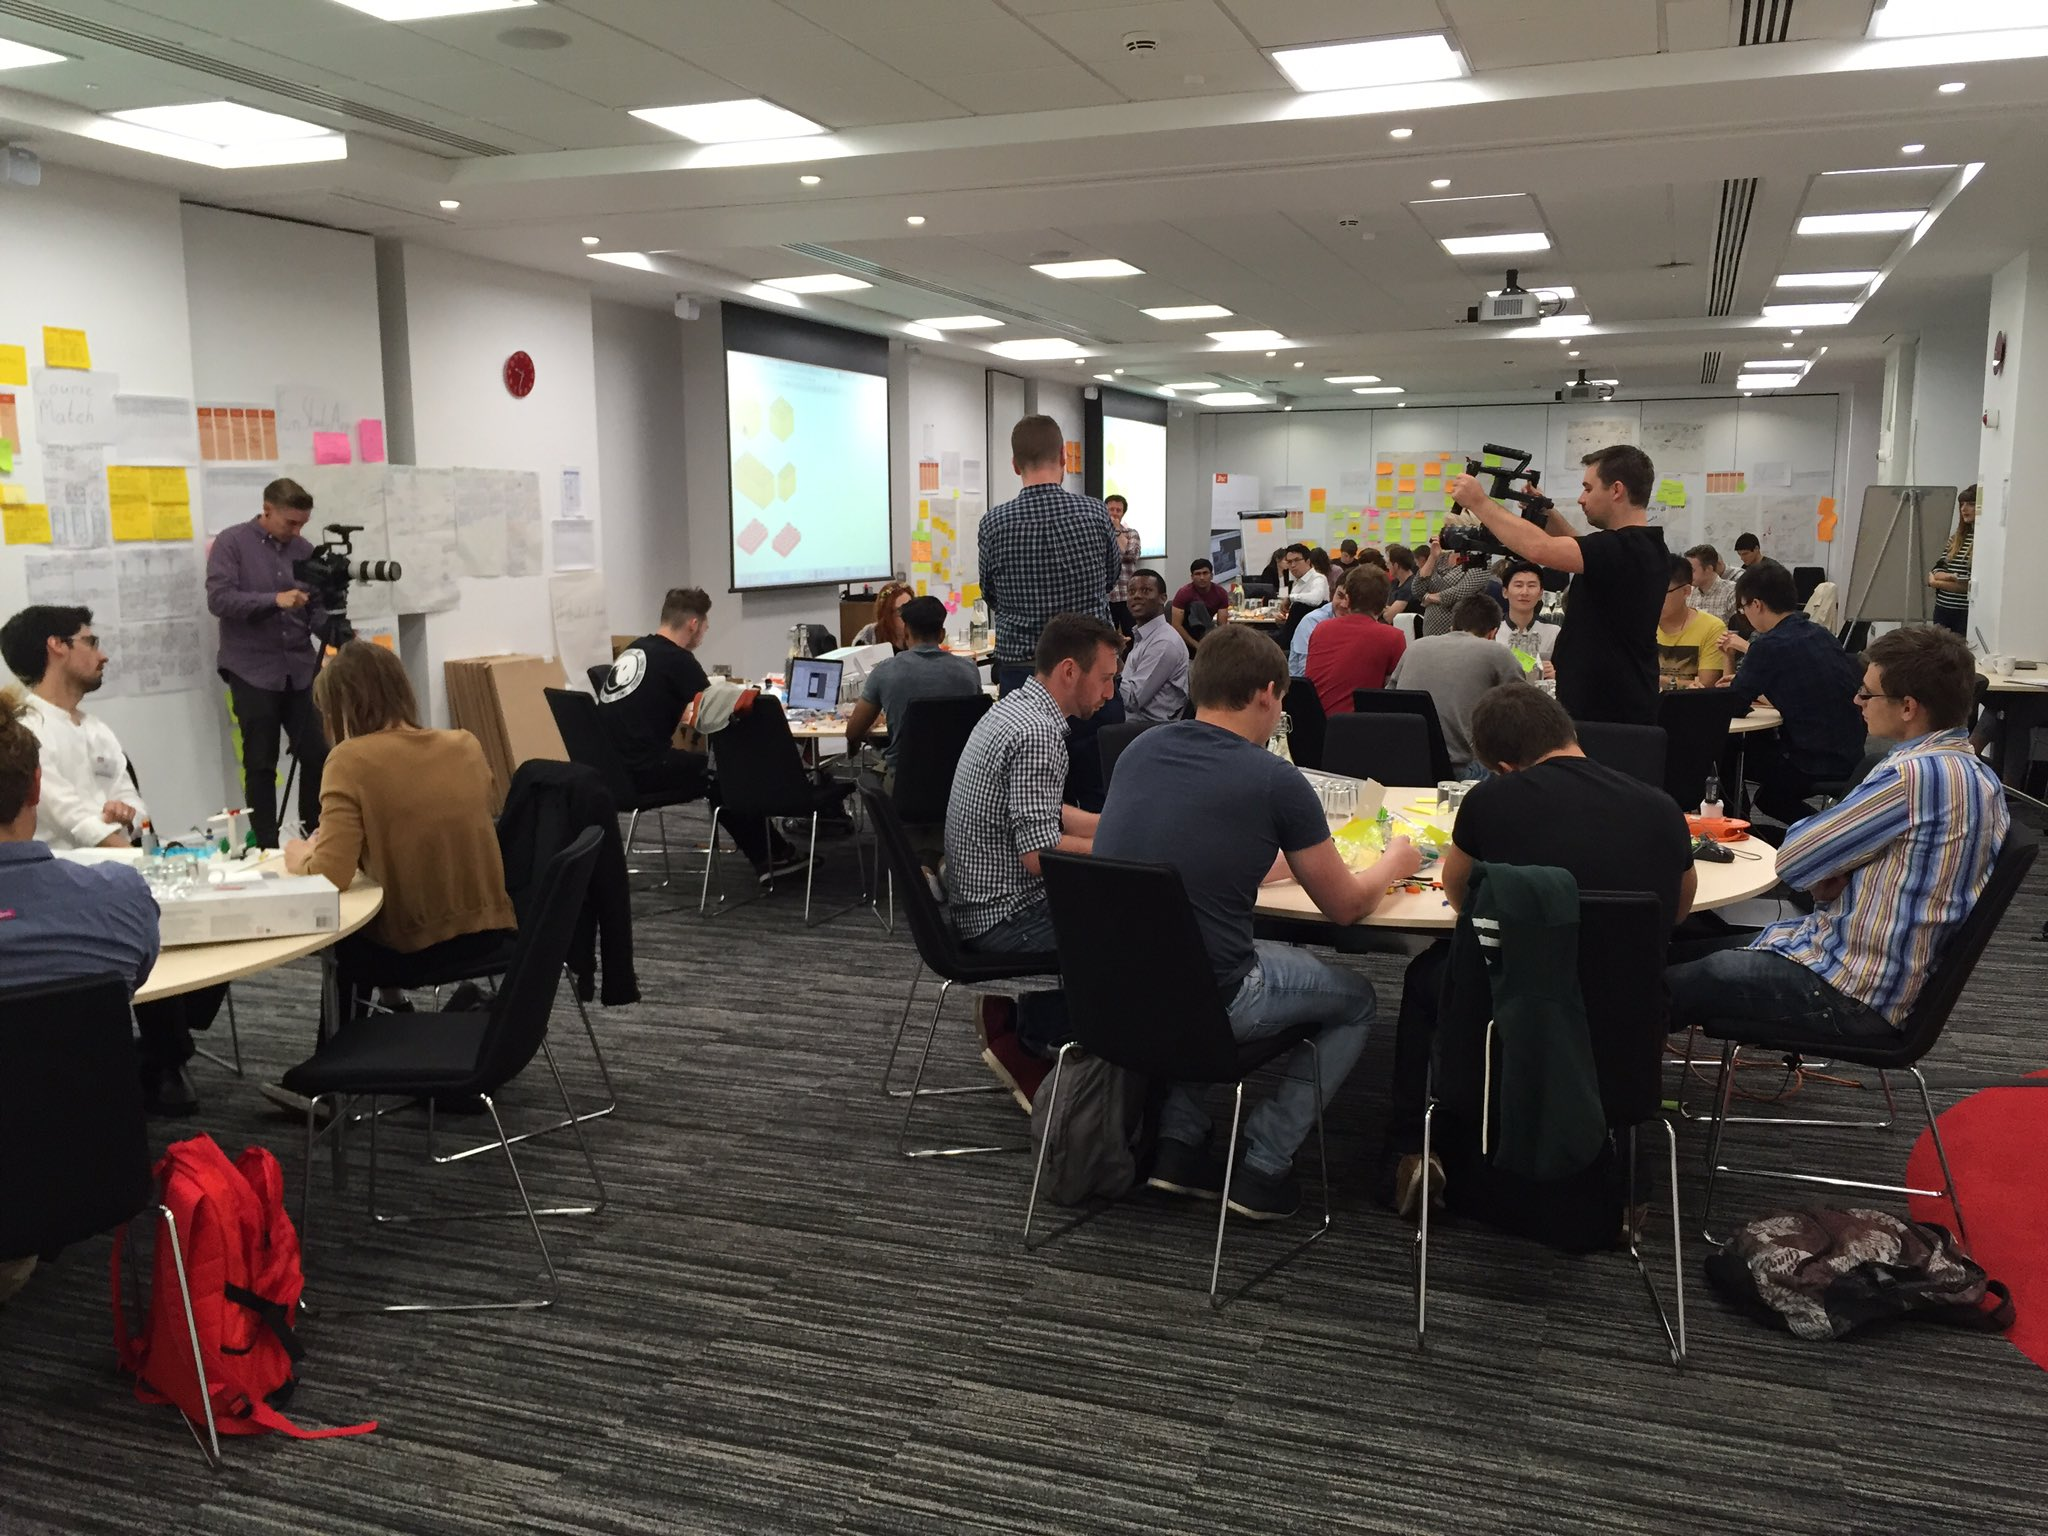 Serious lego time at Jisc #studentideas design sprint https://t.co/ajMMTfBTKH